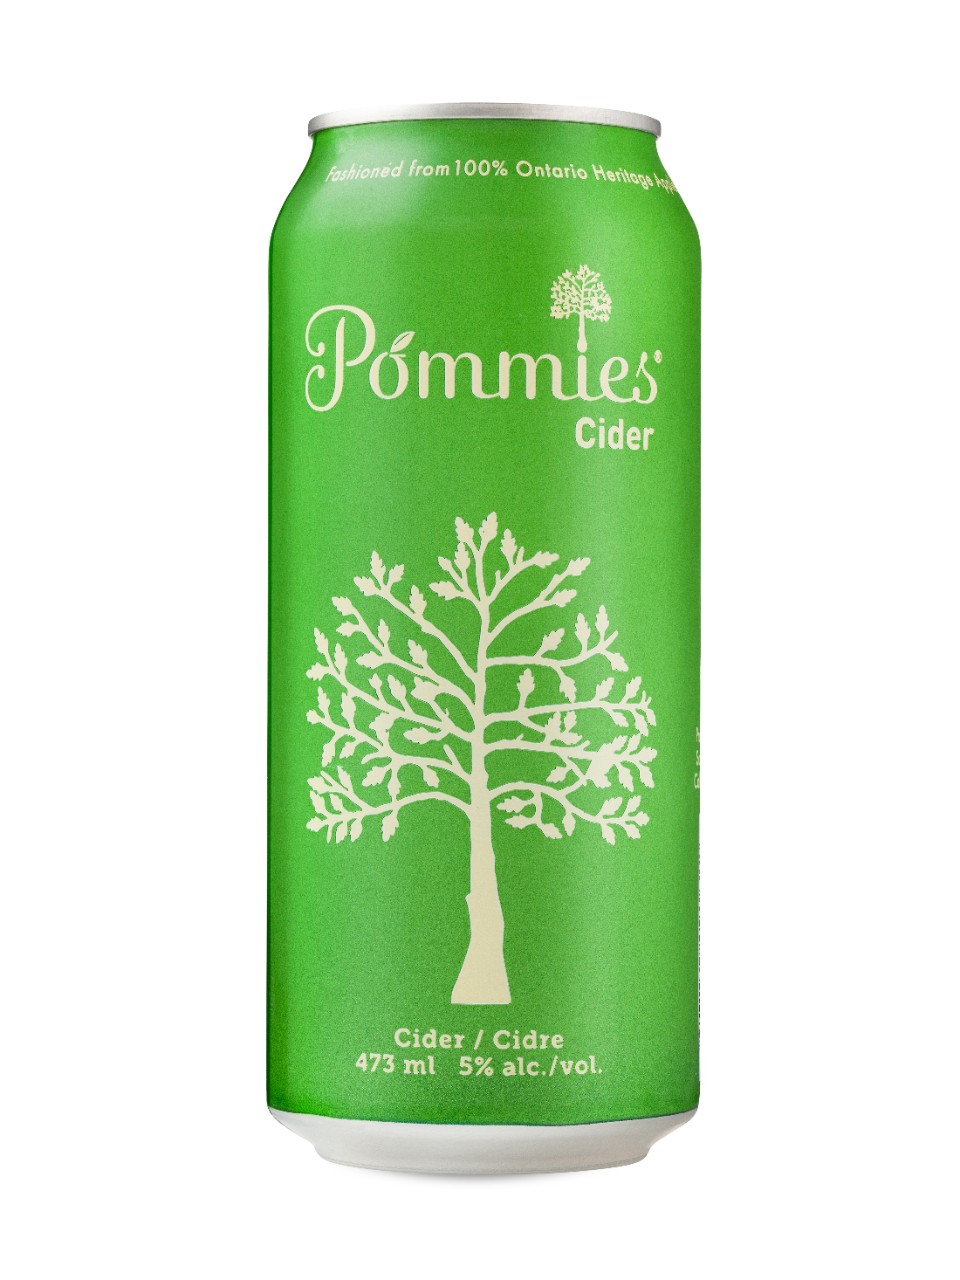 Pommies Cider Lcbo